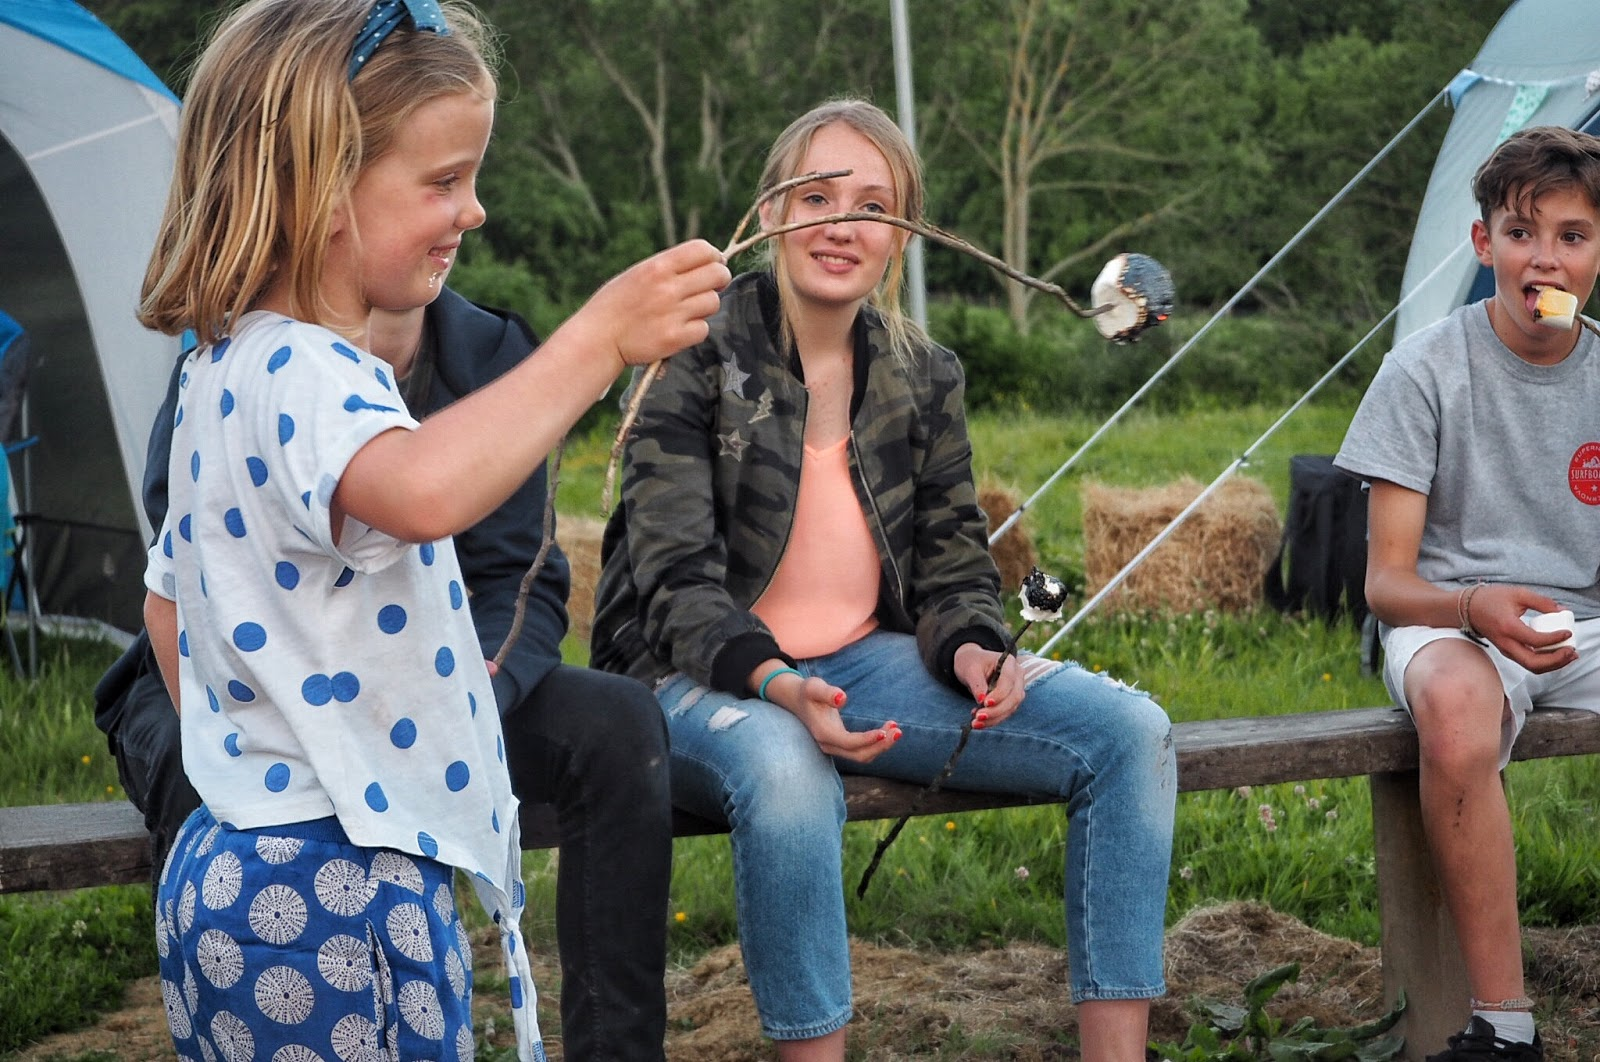 A UK staycation exploring rural Kent with outdoor store GO Outdoors. The post includes a #GORoadtrip and #GOcation with campfires, activities such as hiking, biking and bush craft as well as plenty of camping fun.